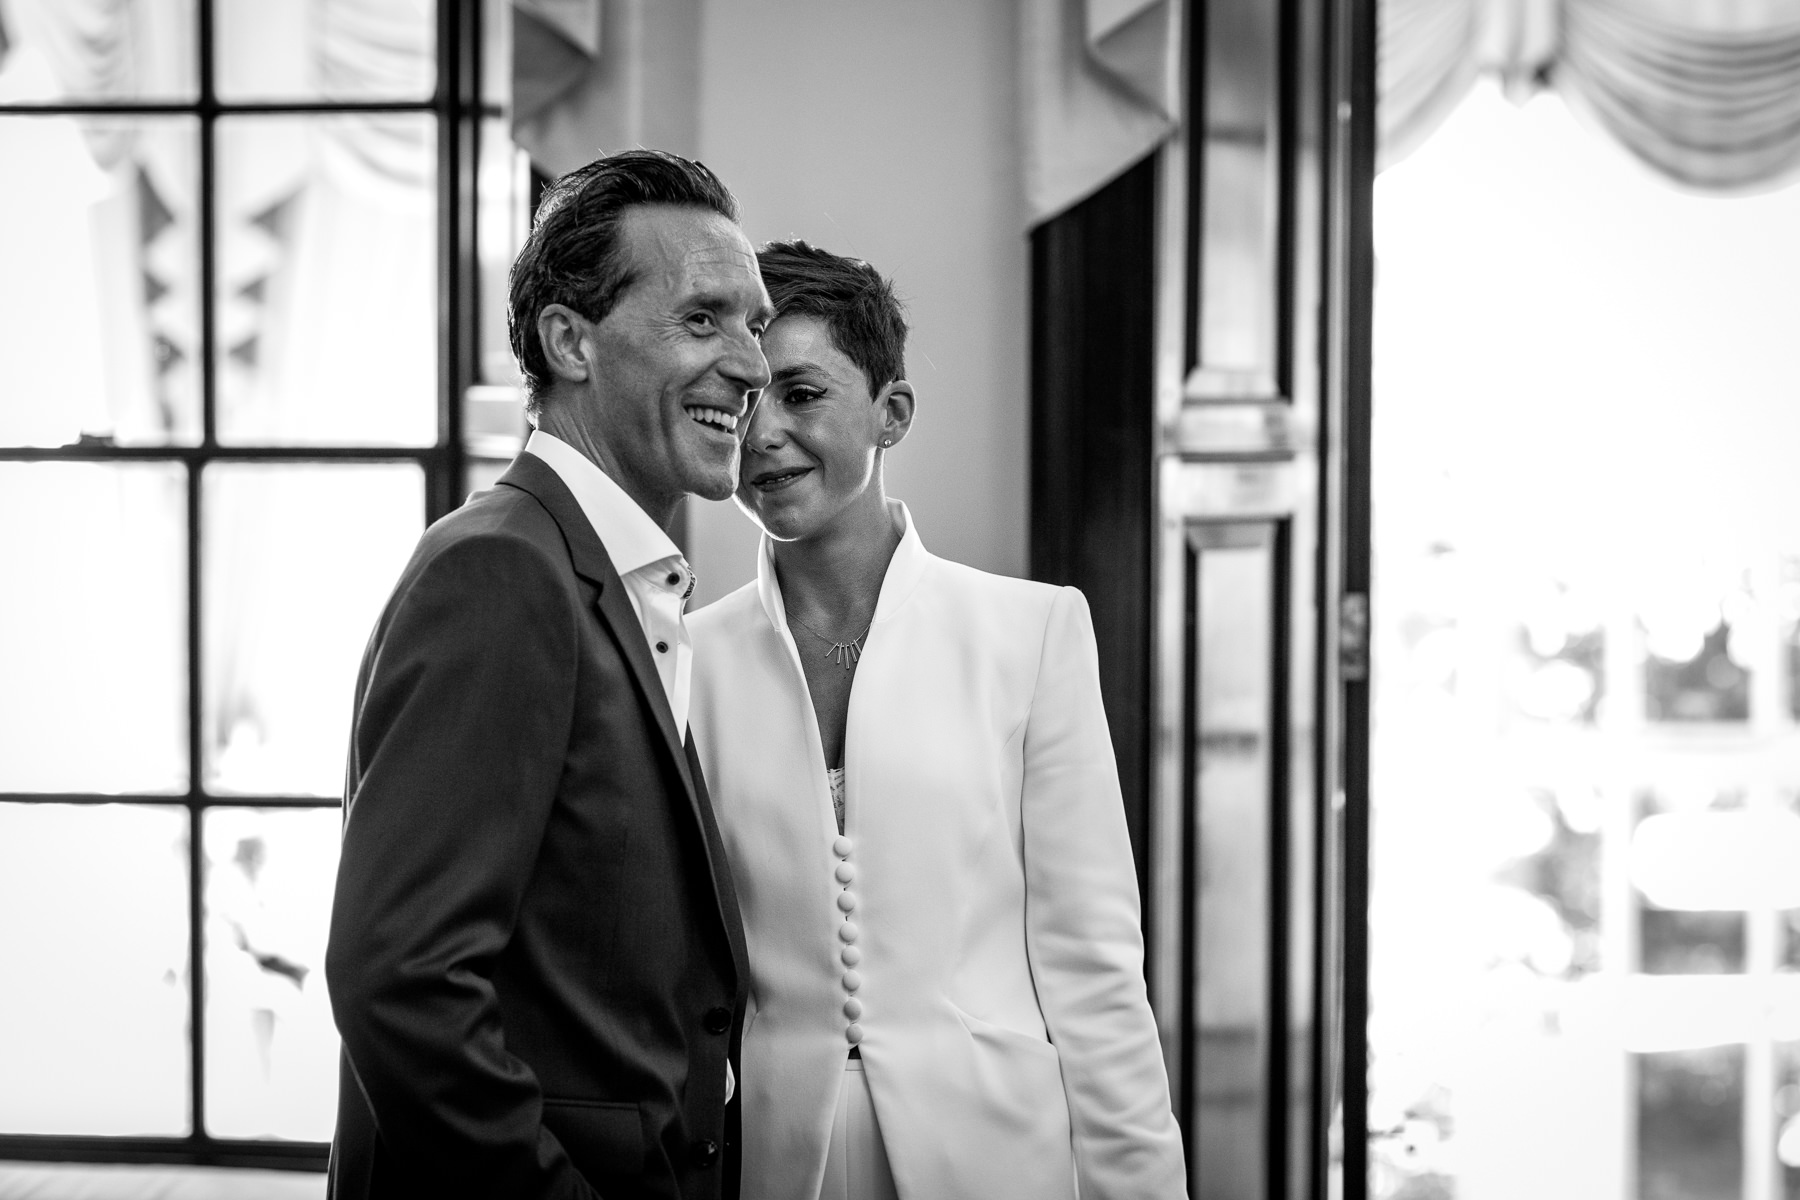 just married happy smiling couple black&white image natural authentic documentary wedding photo bride groom couple beaverbrook surrey hills leatherhead register office wedding photographer